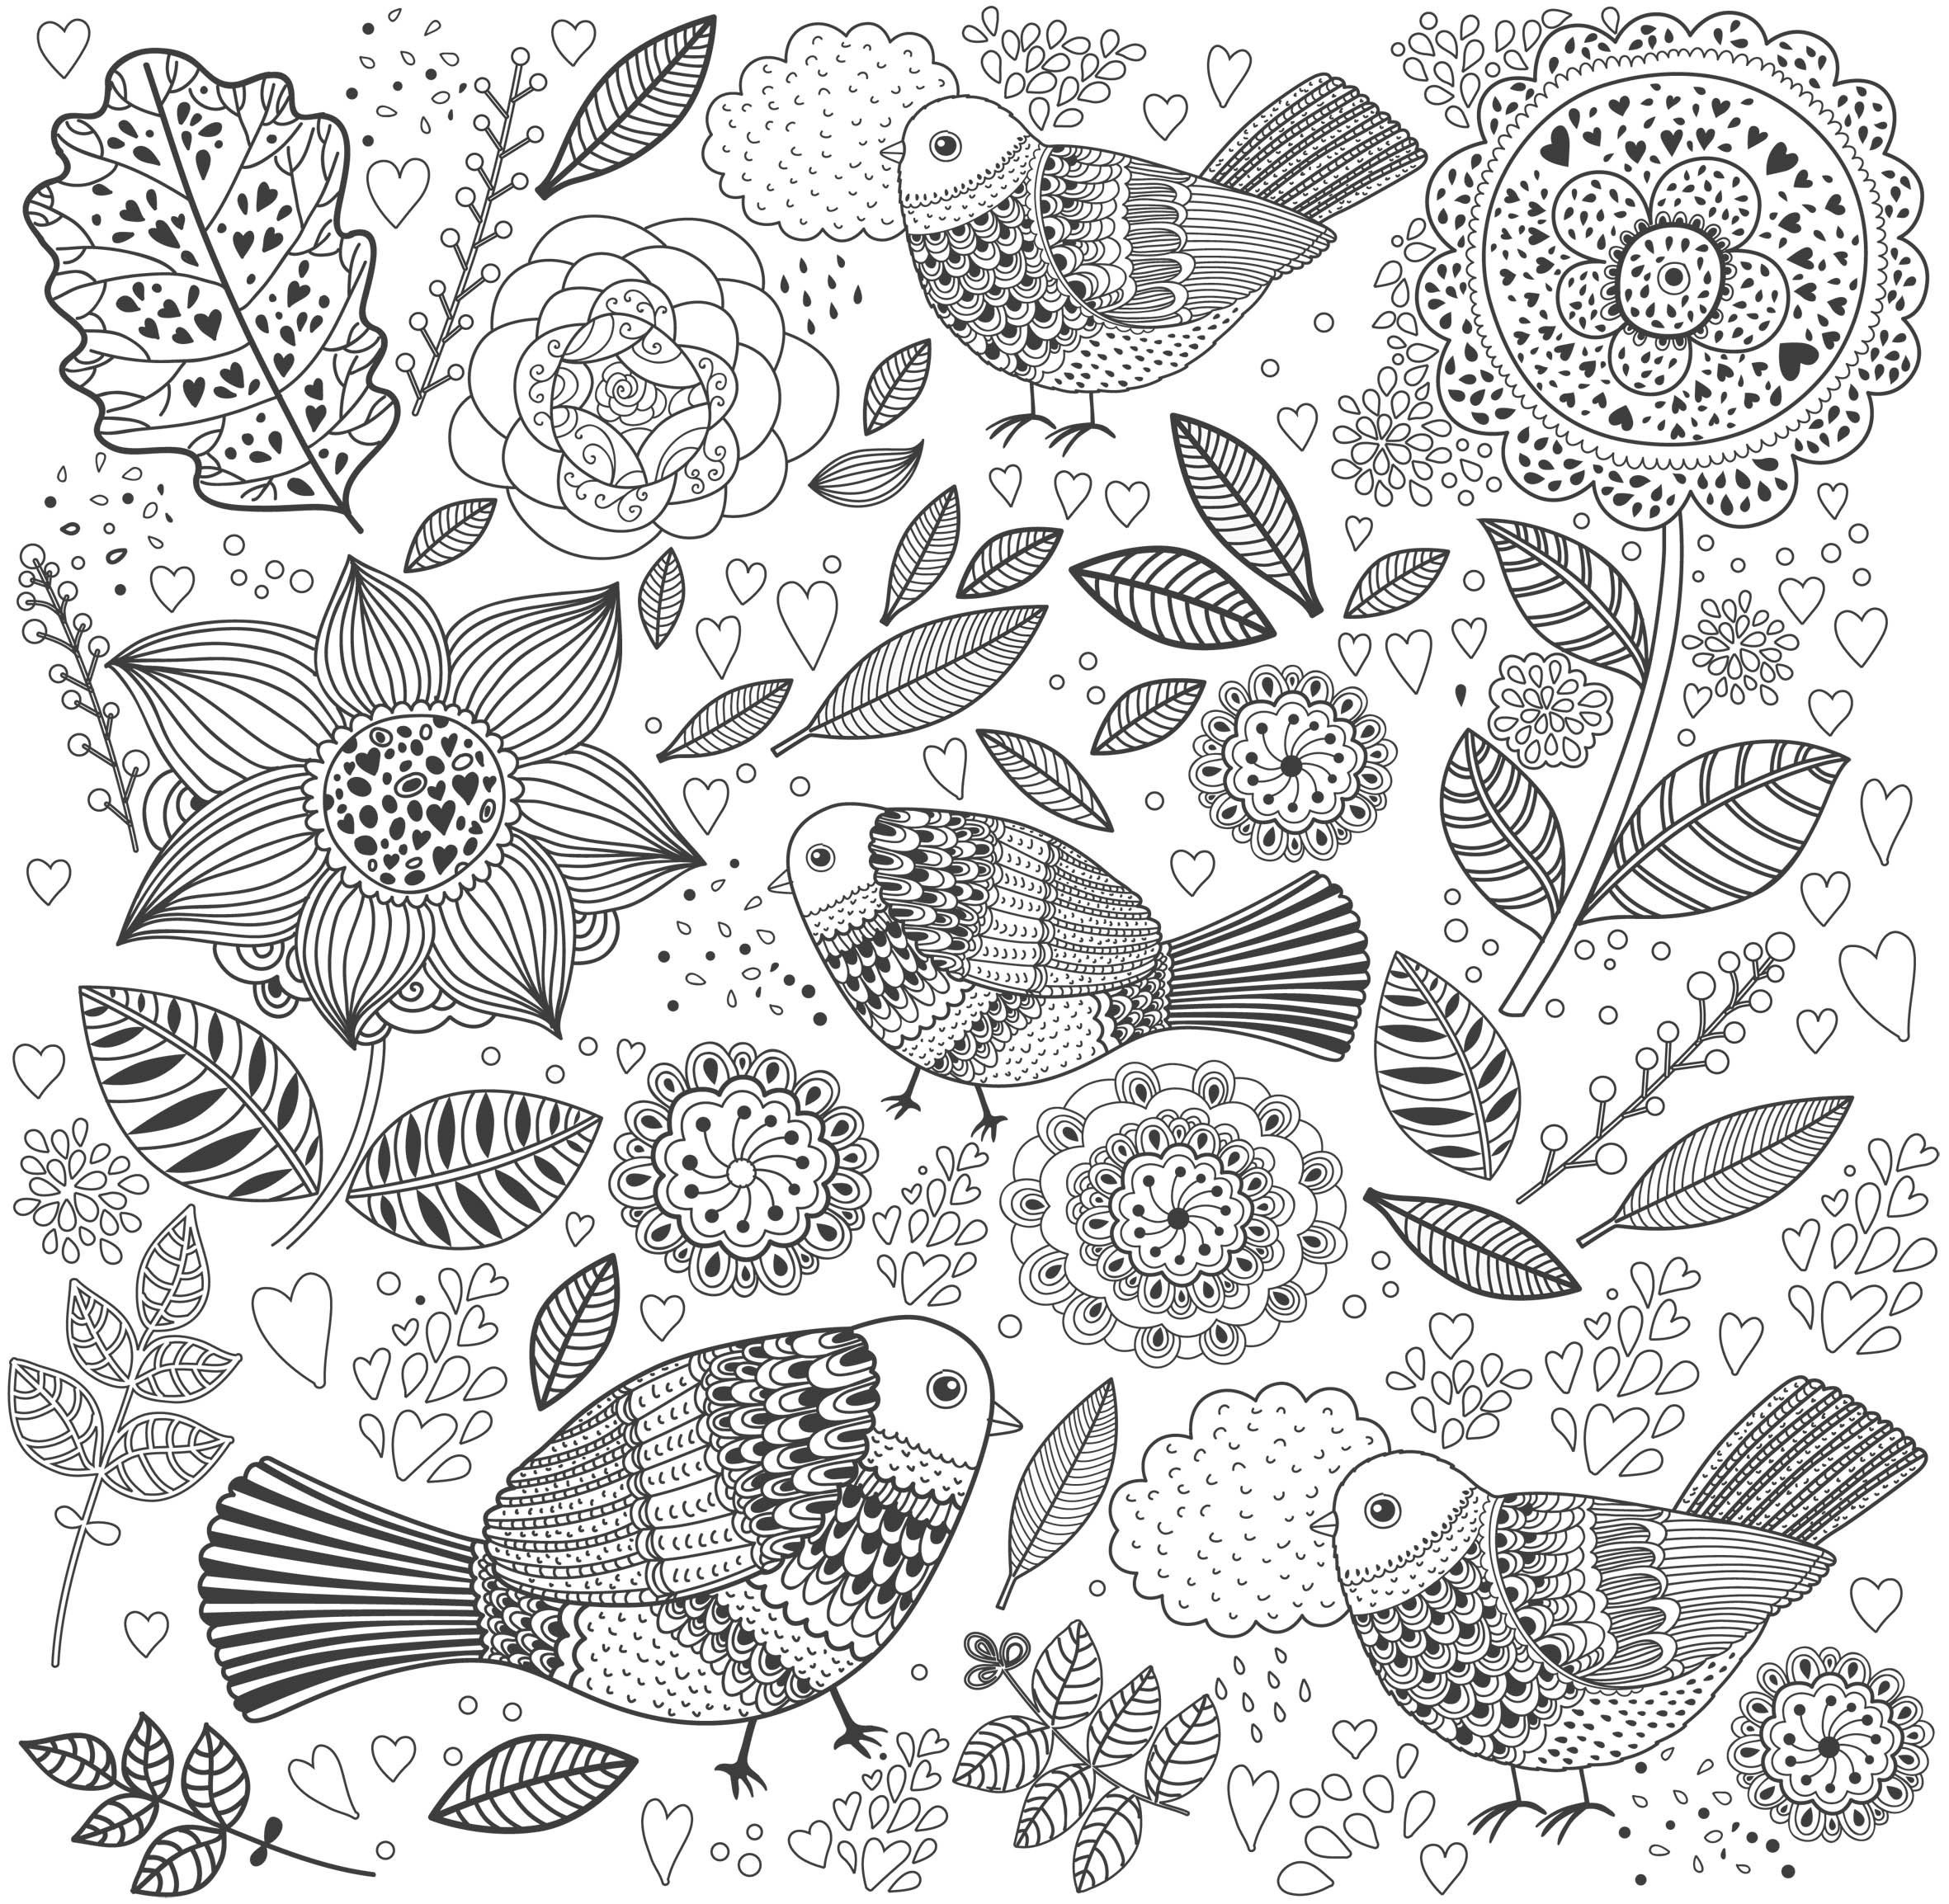 Flower garden coloring pages printable - Coloriage Inspiration Amazonie Des Coloriages Anti Stress En Printable Gratuit Coloring For Adultsadult Coloring Pagesgarden